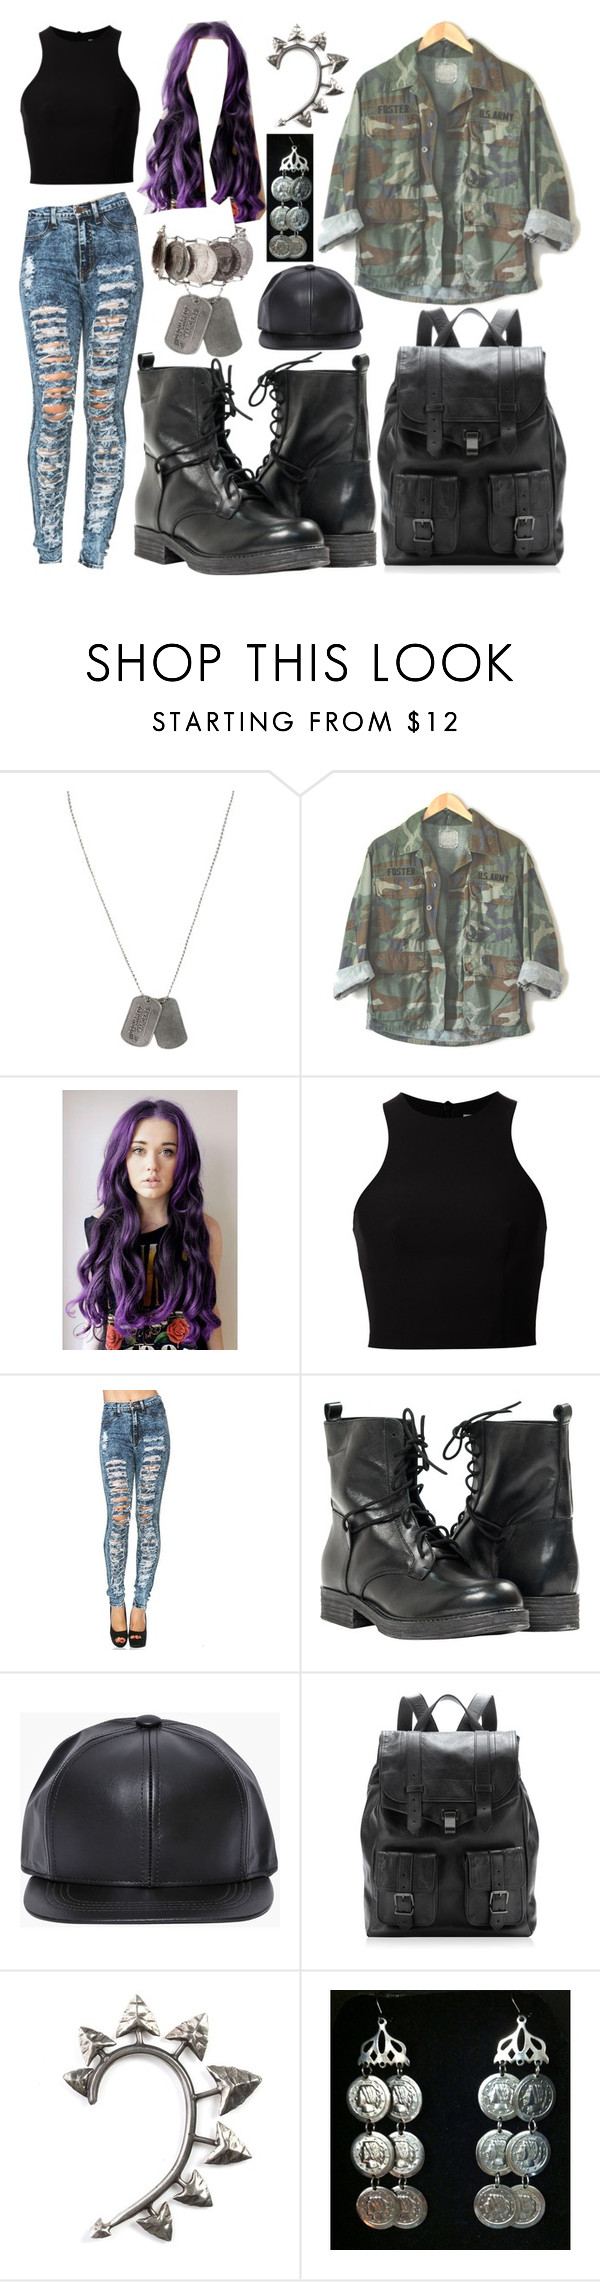 """Day Out #4"" by alex-fox1 ❤ liked on Polyvore featuring Dsquared2, T By Alexander Wang, Proenza Schouler, Rachel Entwistle, women's clothing, women, female, woman, misses and juniors"